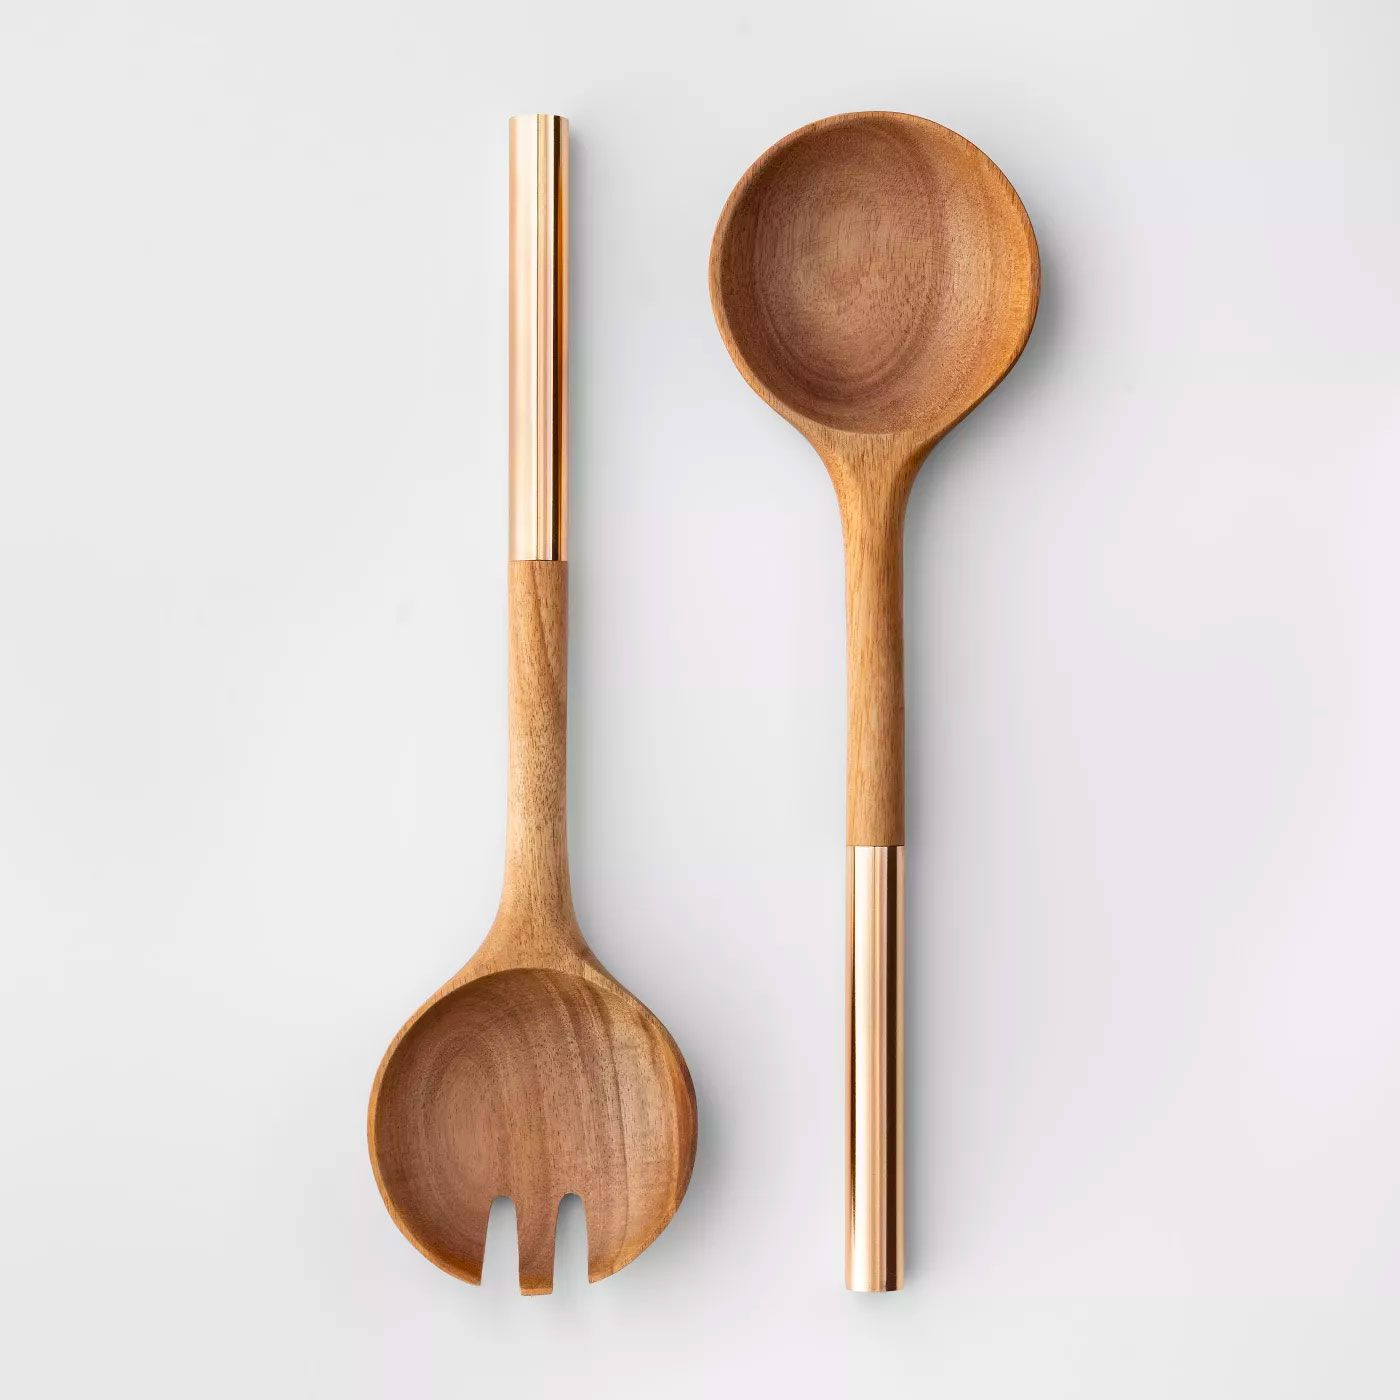 Cravings by Chrissy Teigen acacia serving set